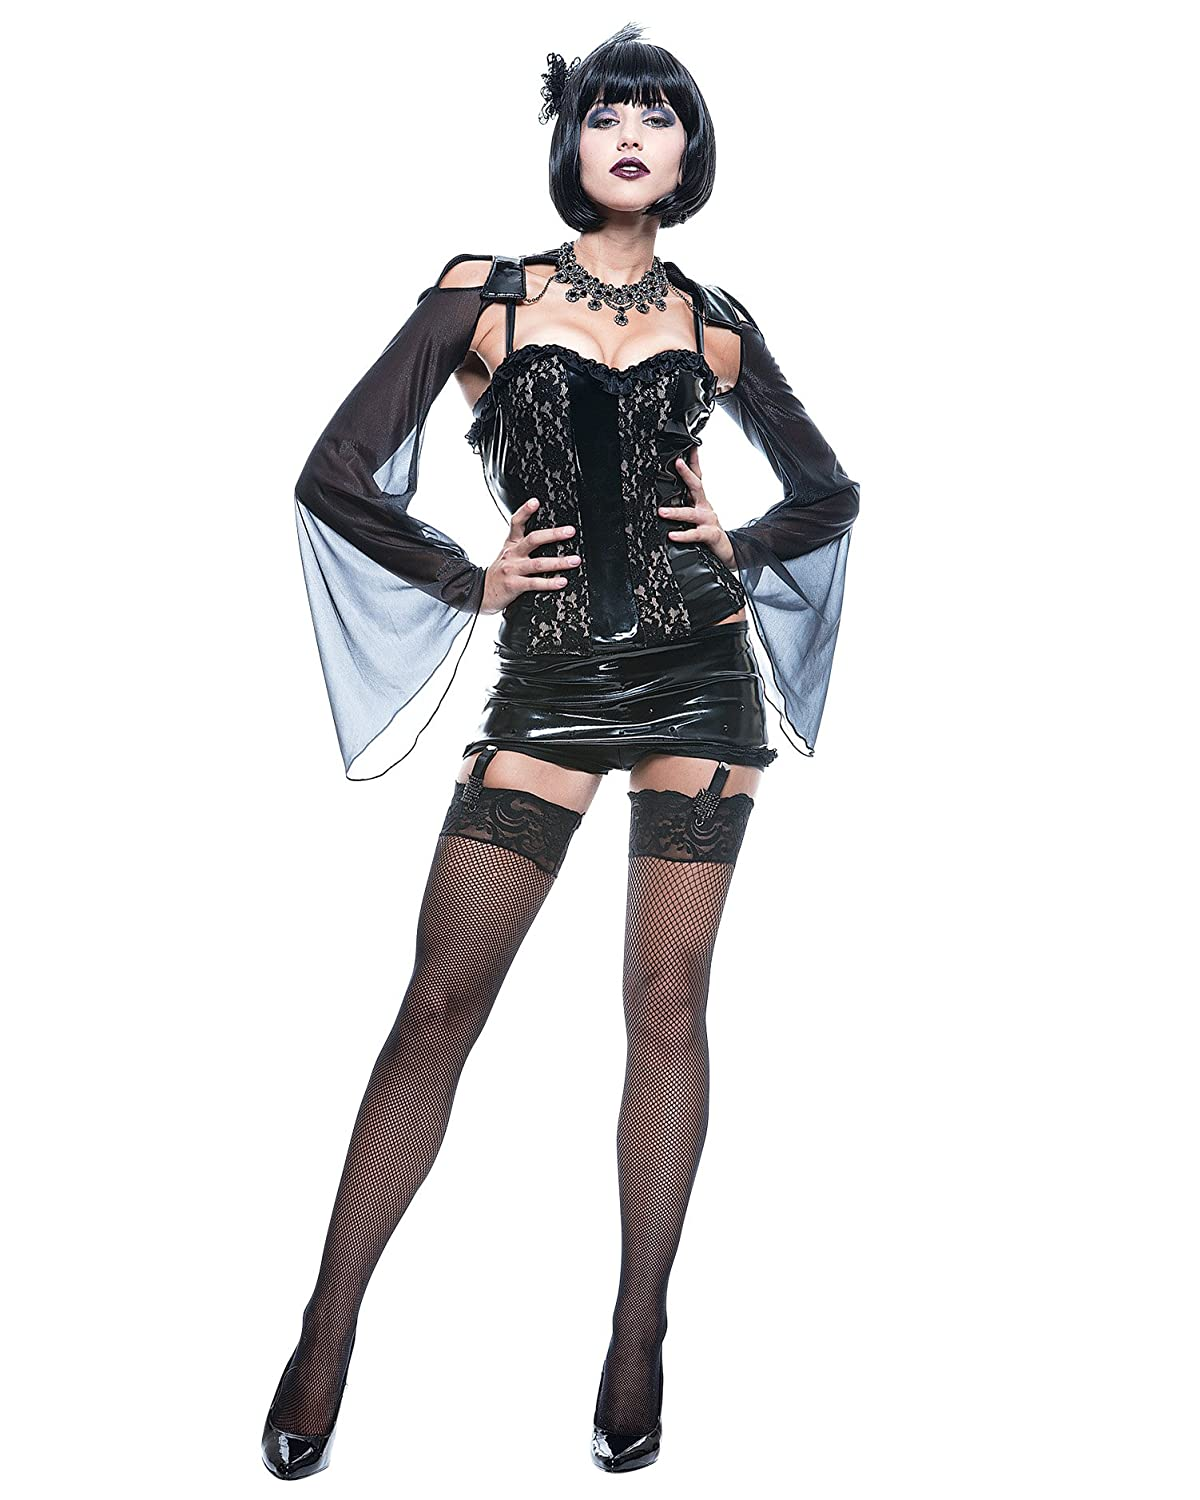 Amazon.com Summitfashions Sexy Gothic Mistress Costume Midnite Mistress Black Corset Theatre Costumes Clothing  sc 1 st  Amazon.com : gothic womens costumes  - Germanpascual.Com